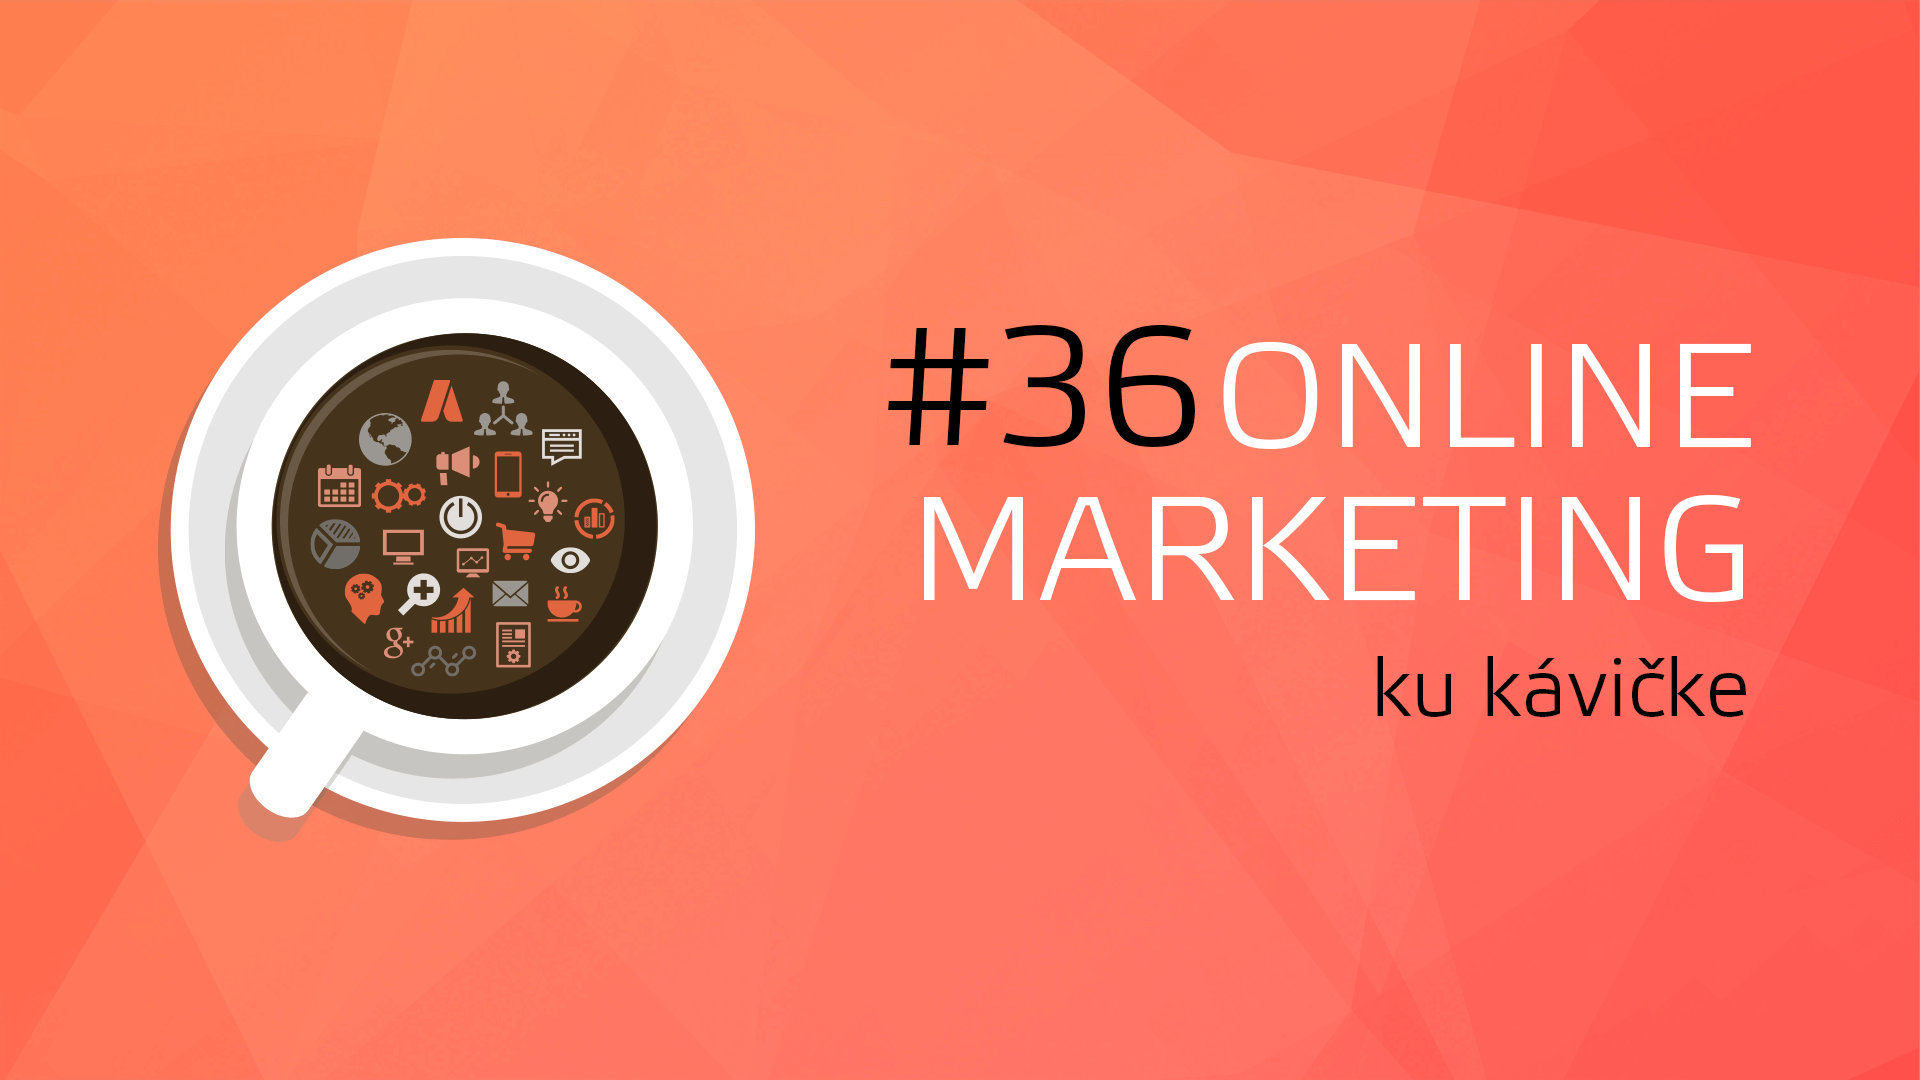 ONLINE MARKETING KU KAVICKE 36 1